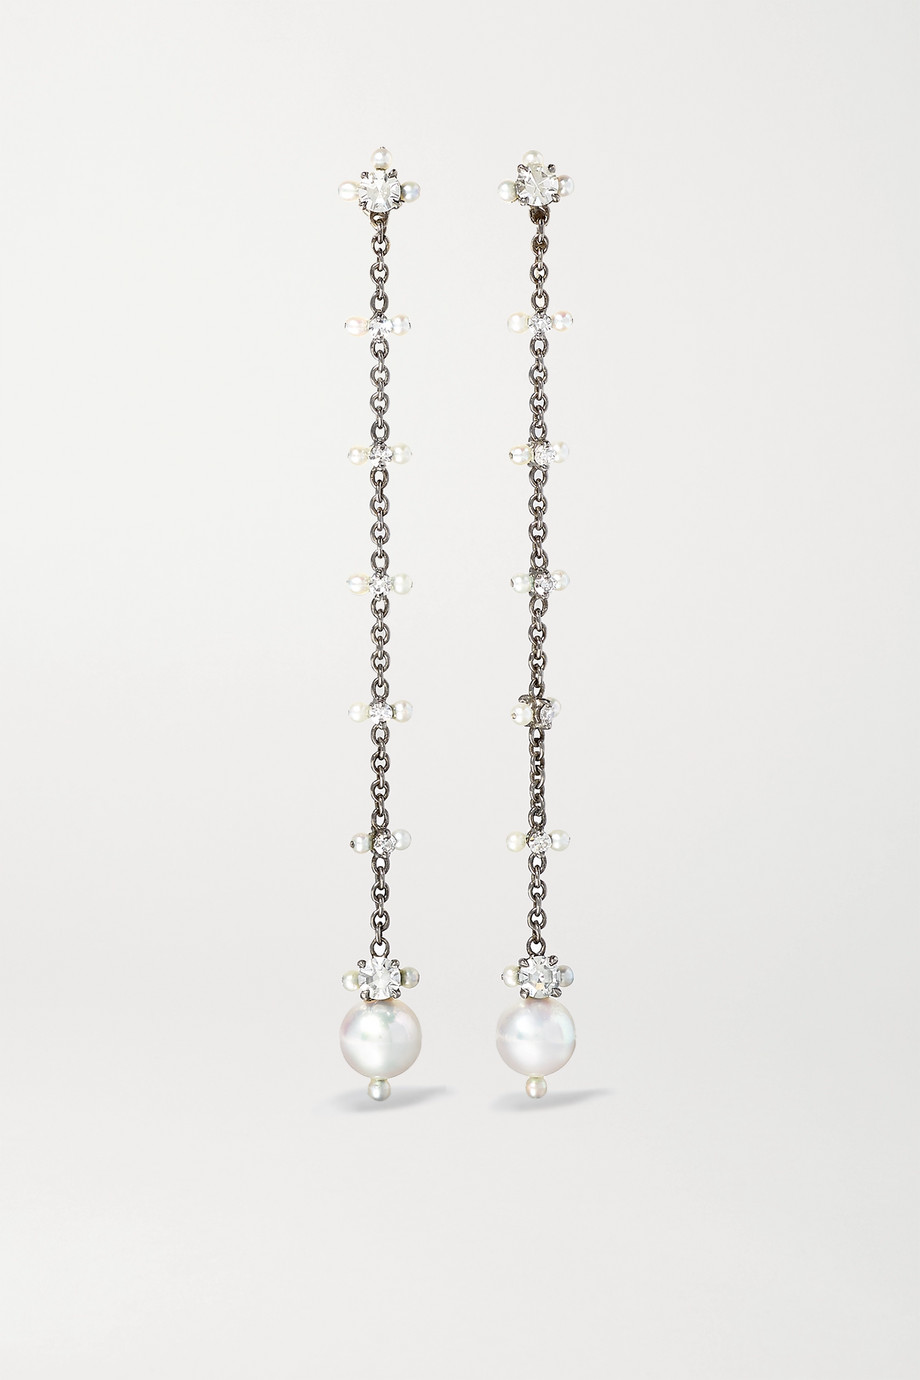 Nadia Morgenthaler + NET SUSTAIN 18-karat recycled blackened white gold, pearl and diamond earrings